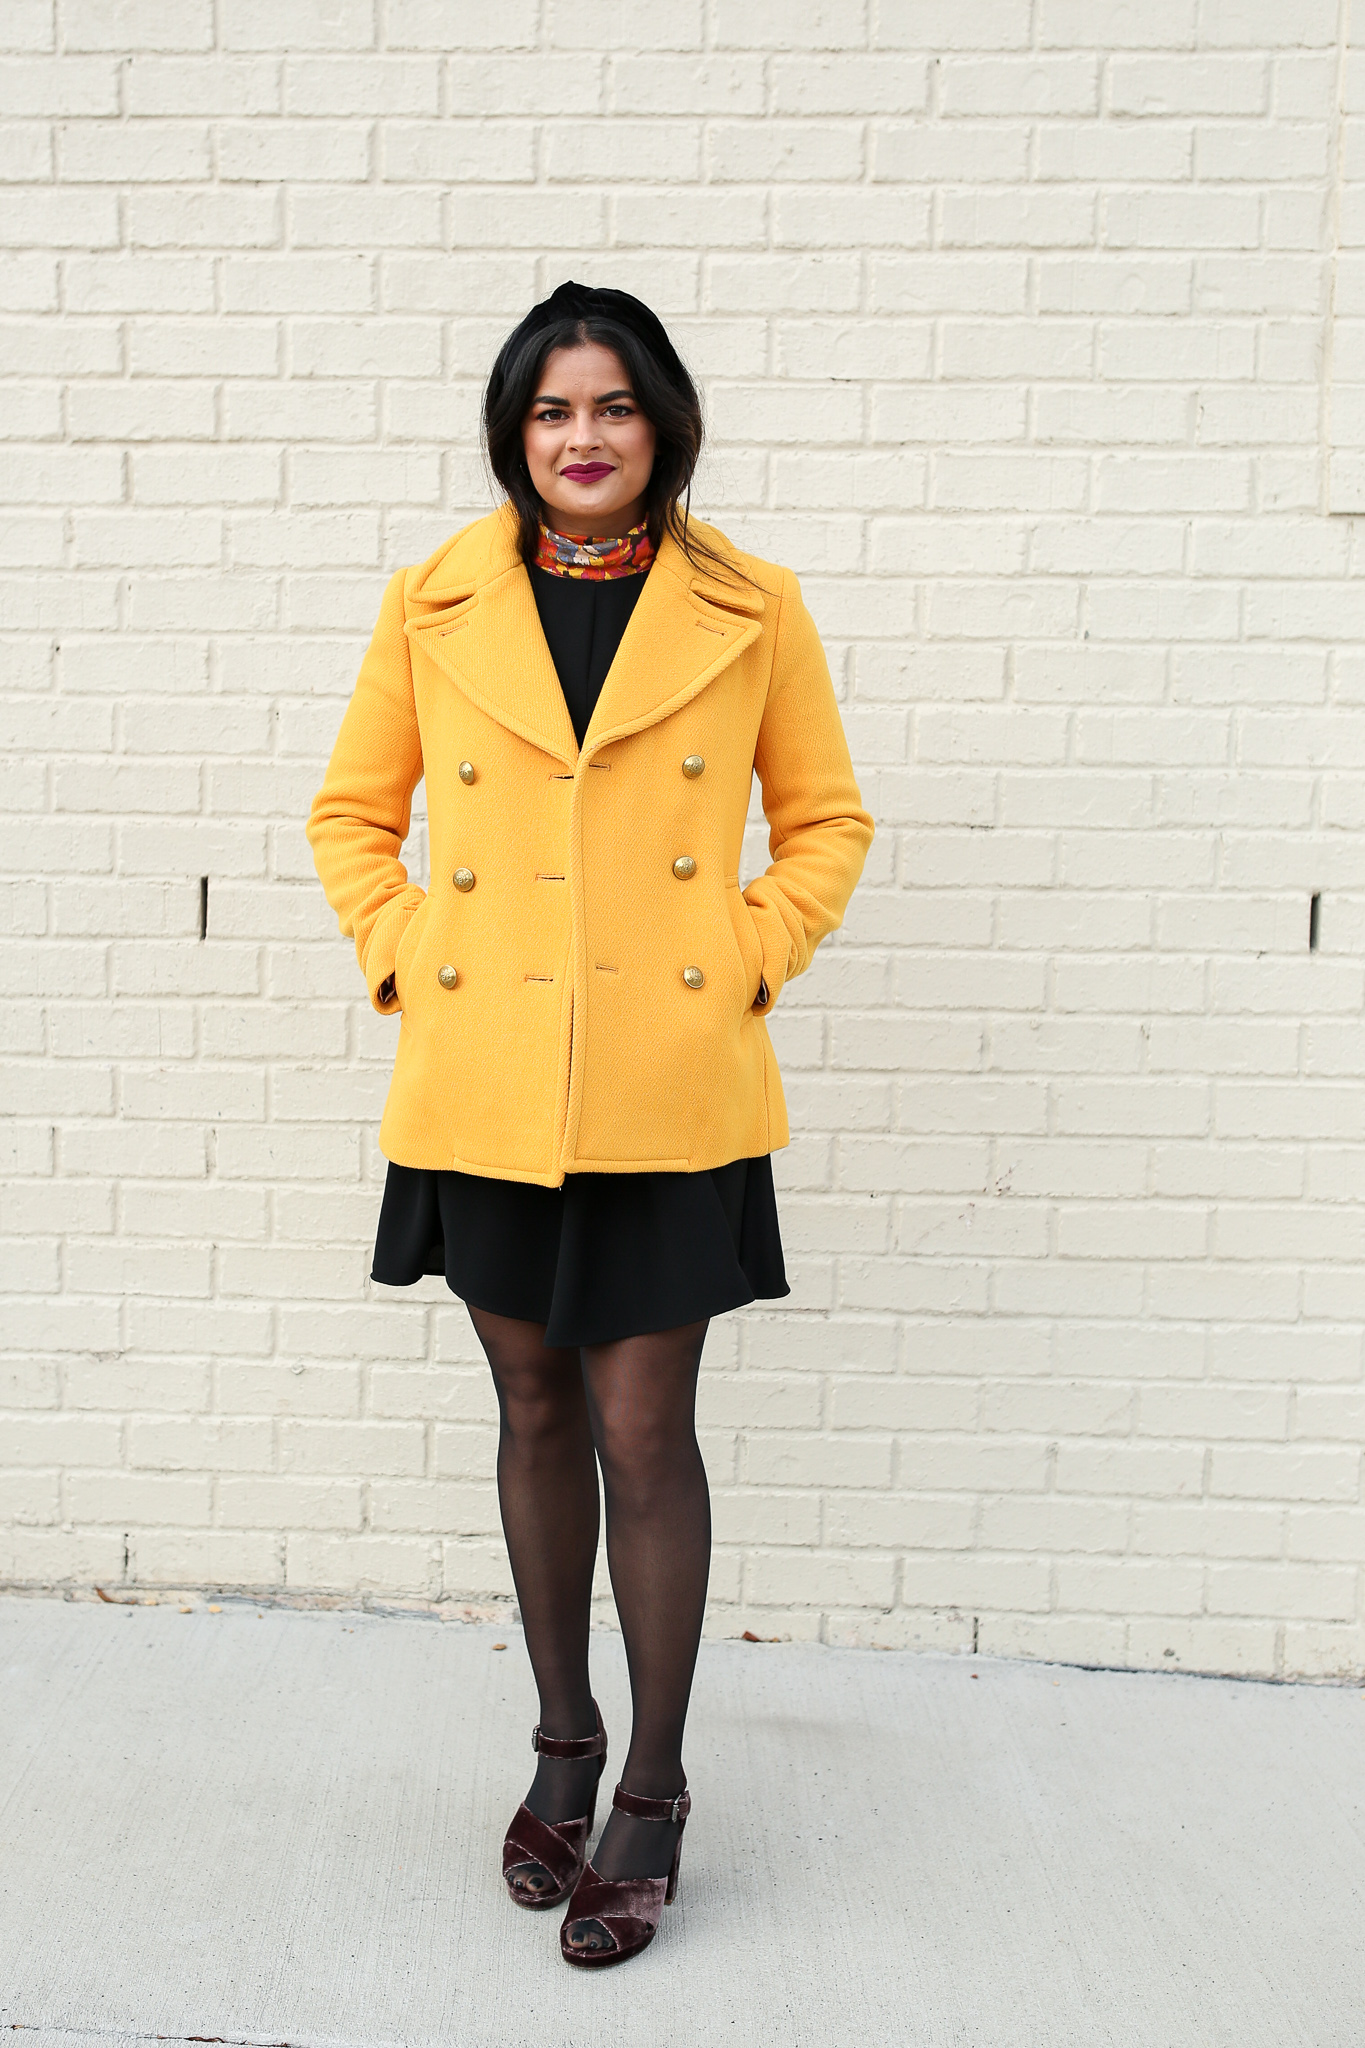 Priya the Blog, Nashville fashion blog, Nashville style blog, Marigold pea coat, yellow pea coat, floral tissue turtleneck, floral turtleneck, 70's floral turtleneck, black a-line dress, black swing dress, velvet headband, how to style a floral turtleneck, velvet block sandals, velvet block heels, Madewell Velvet Sandals, J.Crew tissue turtleneck, how to style a yellow peacoat